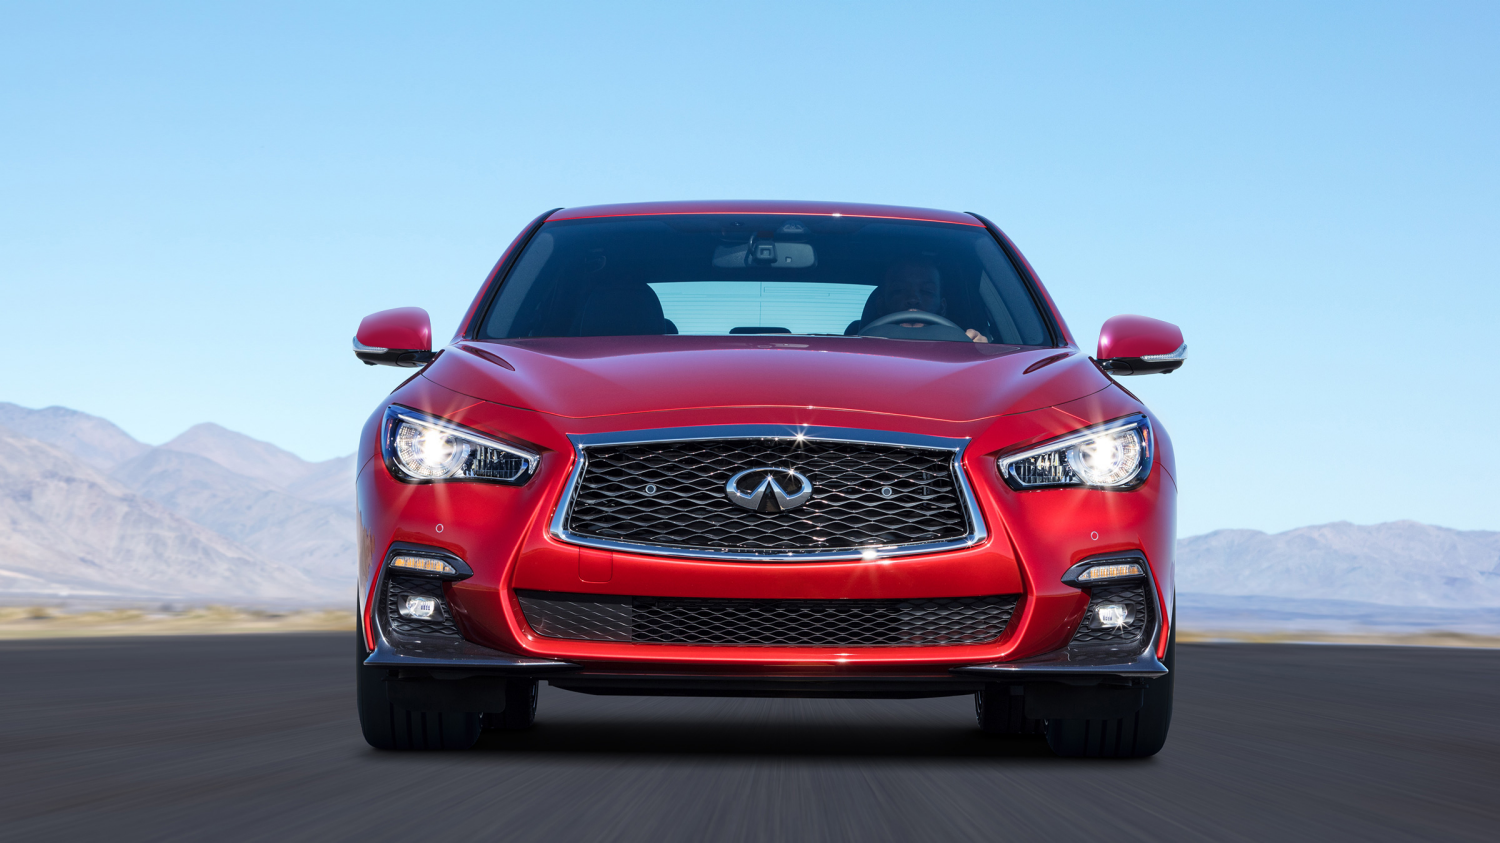 2018 INFINITI Q50 Red Sport Sedan Performance | Up to 400 Horsepower